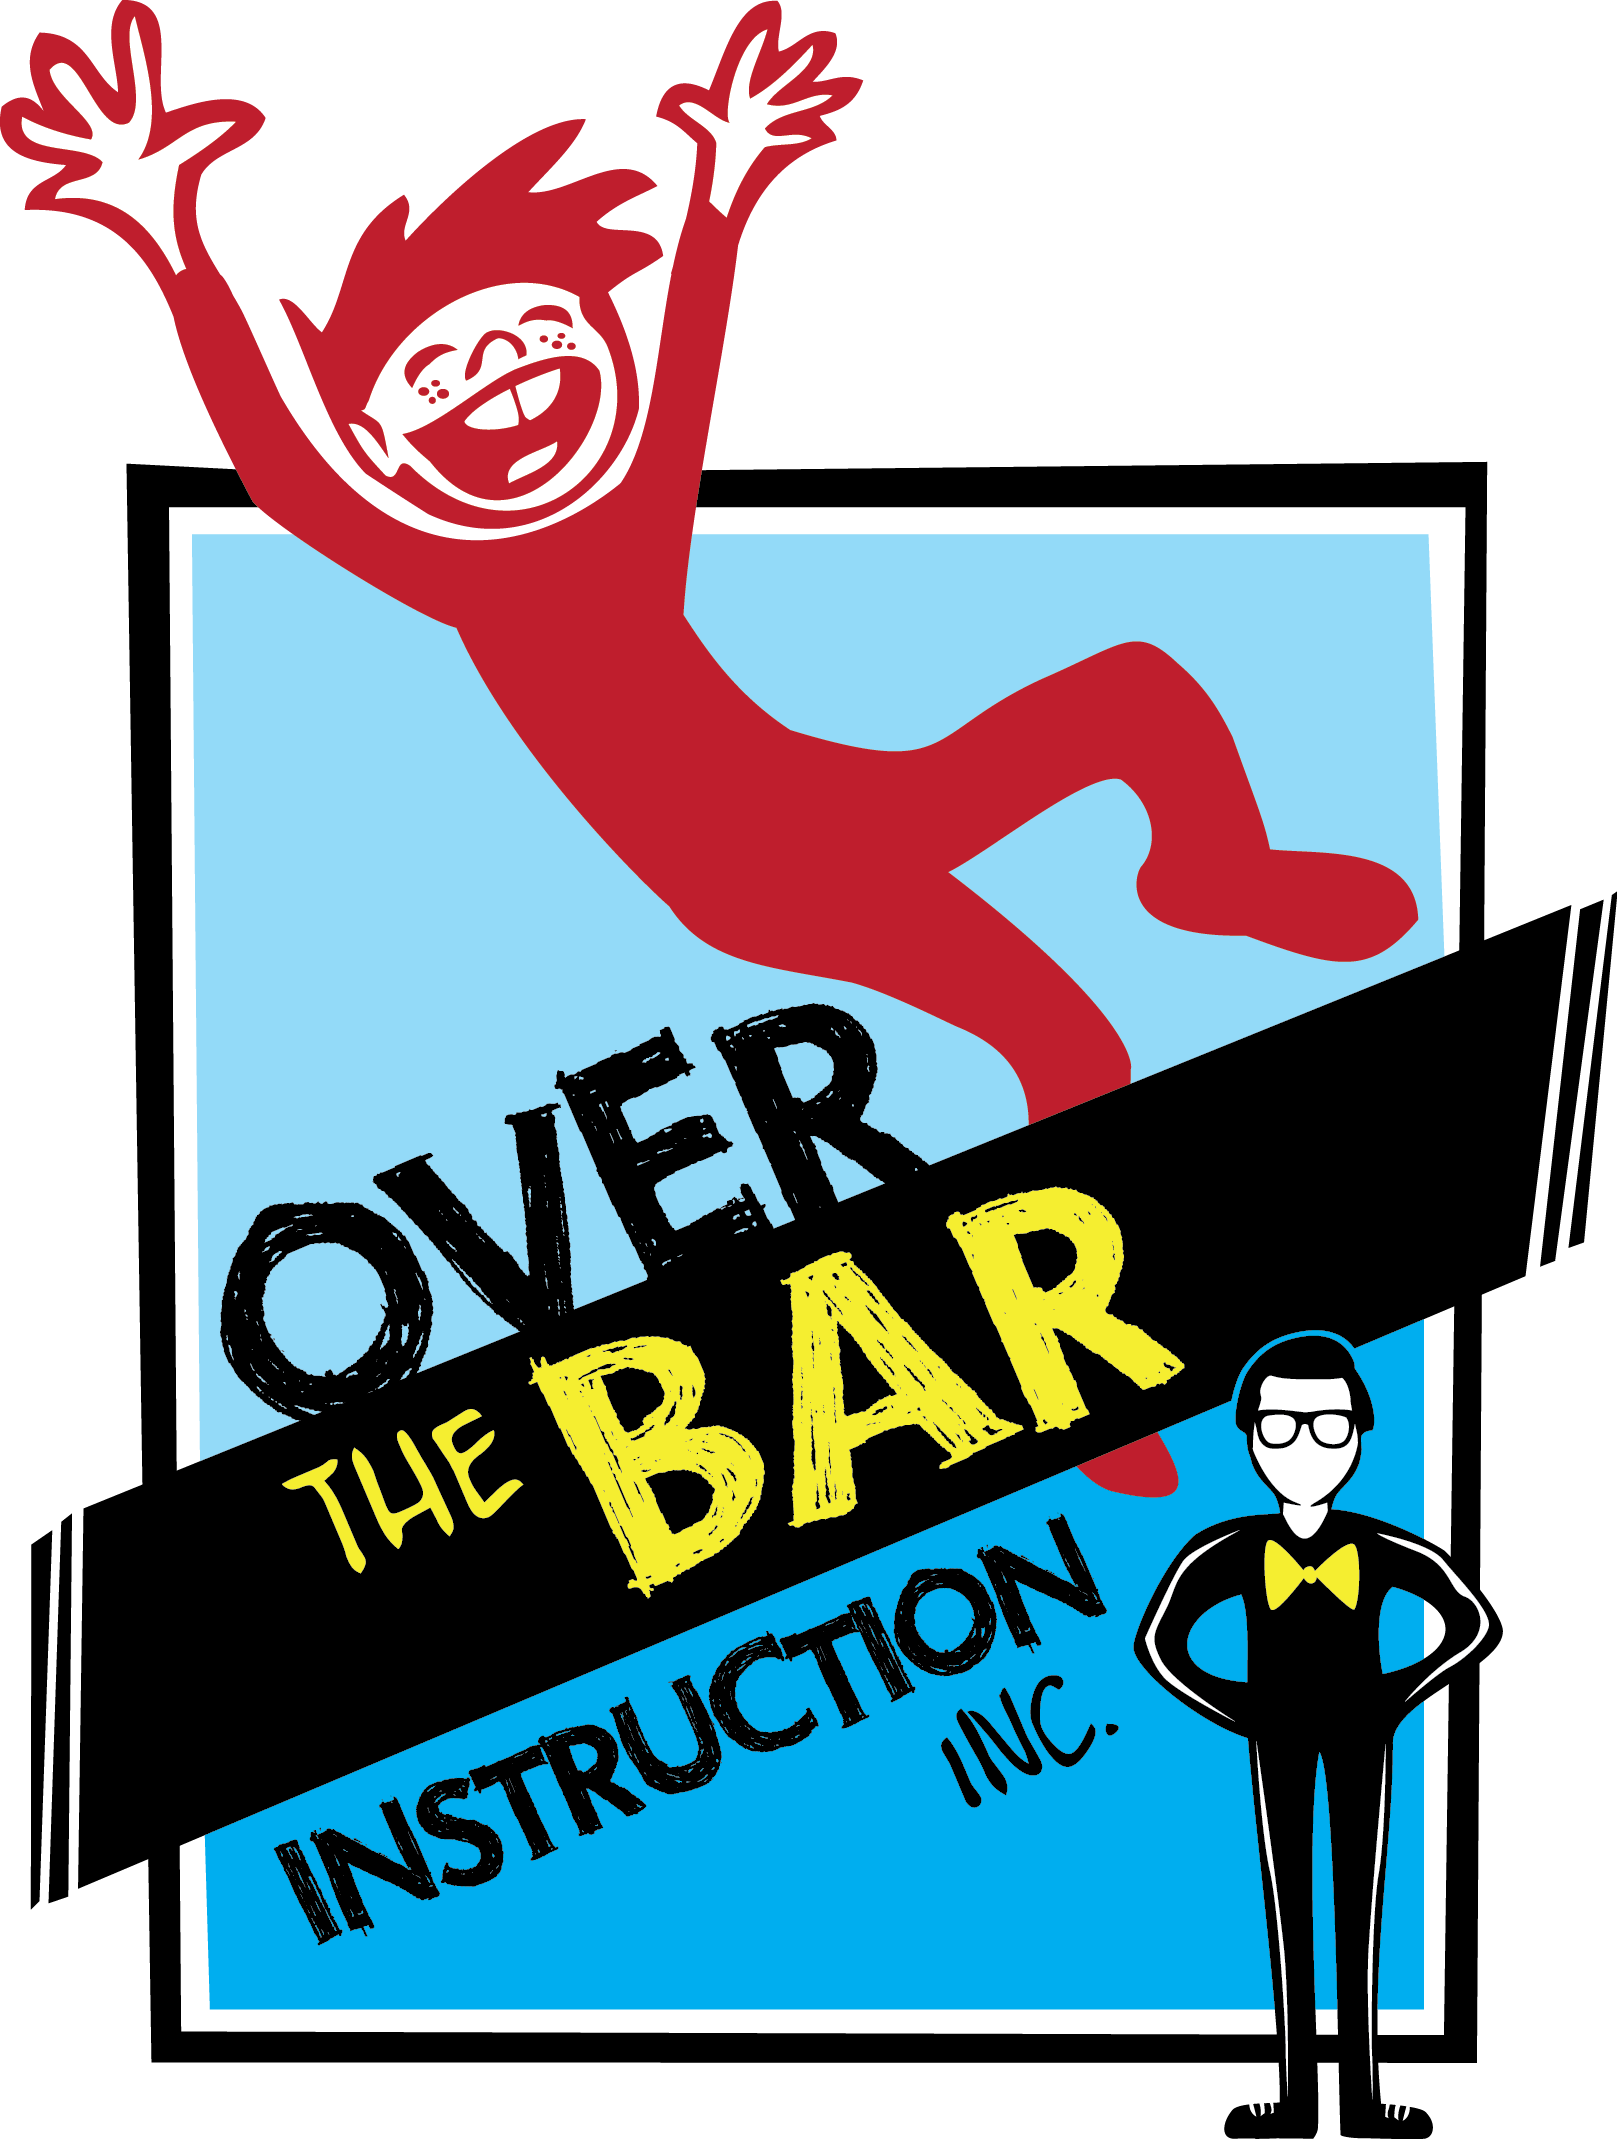 clipart free download Grammar clipart instruction. Over the bar inc